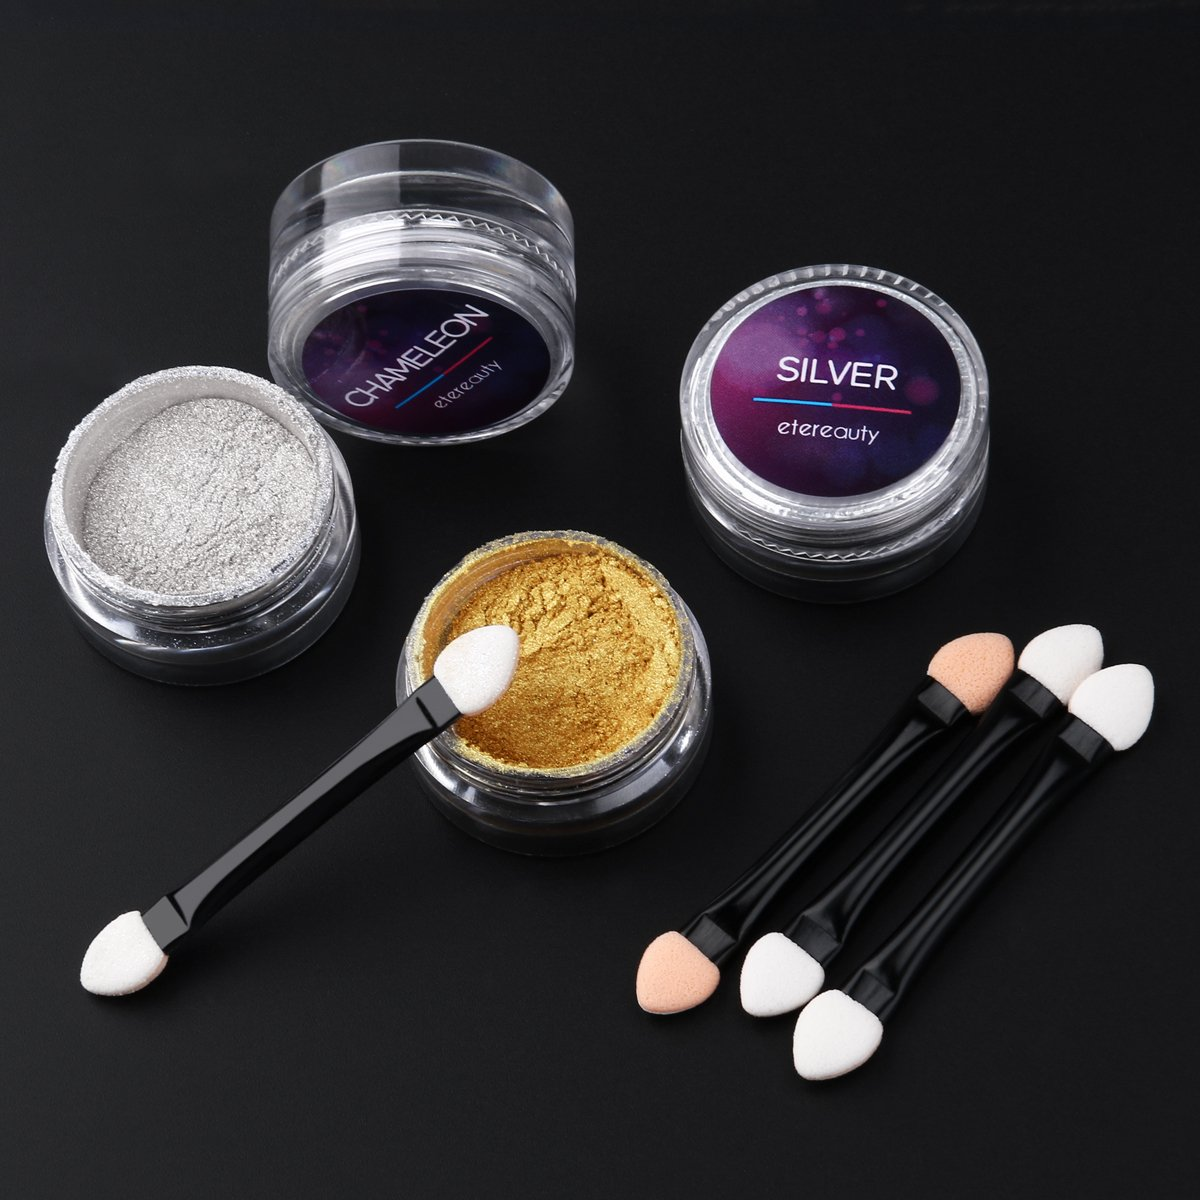 ETEREAUTY Nagel Pulver Spiegel Chrome Nail Powder Glitzerpuder für ...